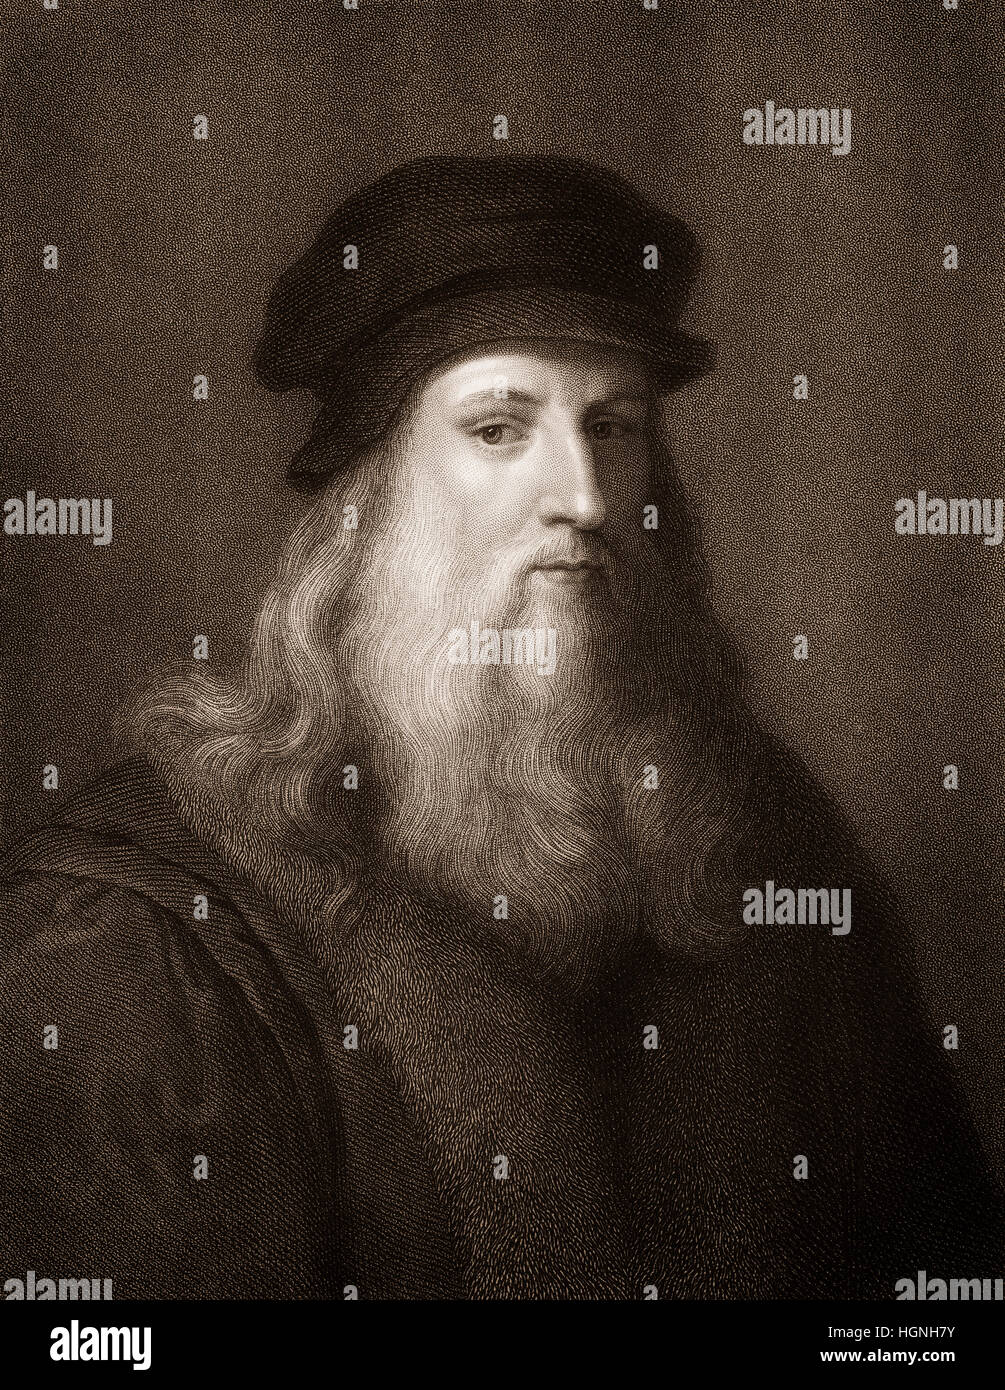 Where Was Da Vinci The First Painter And State Engineer